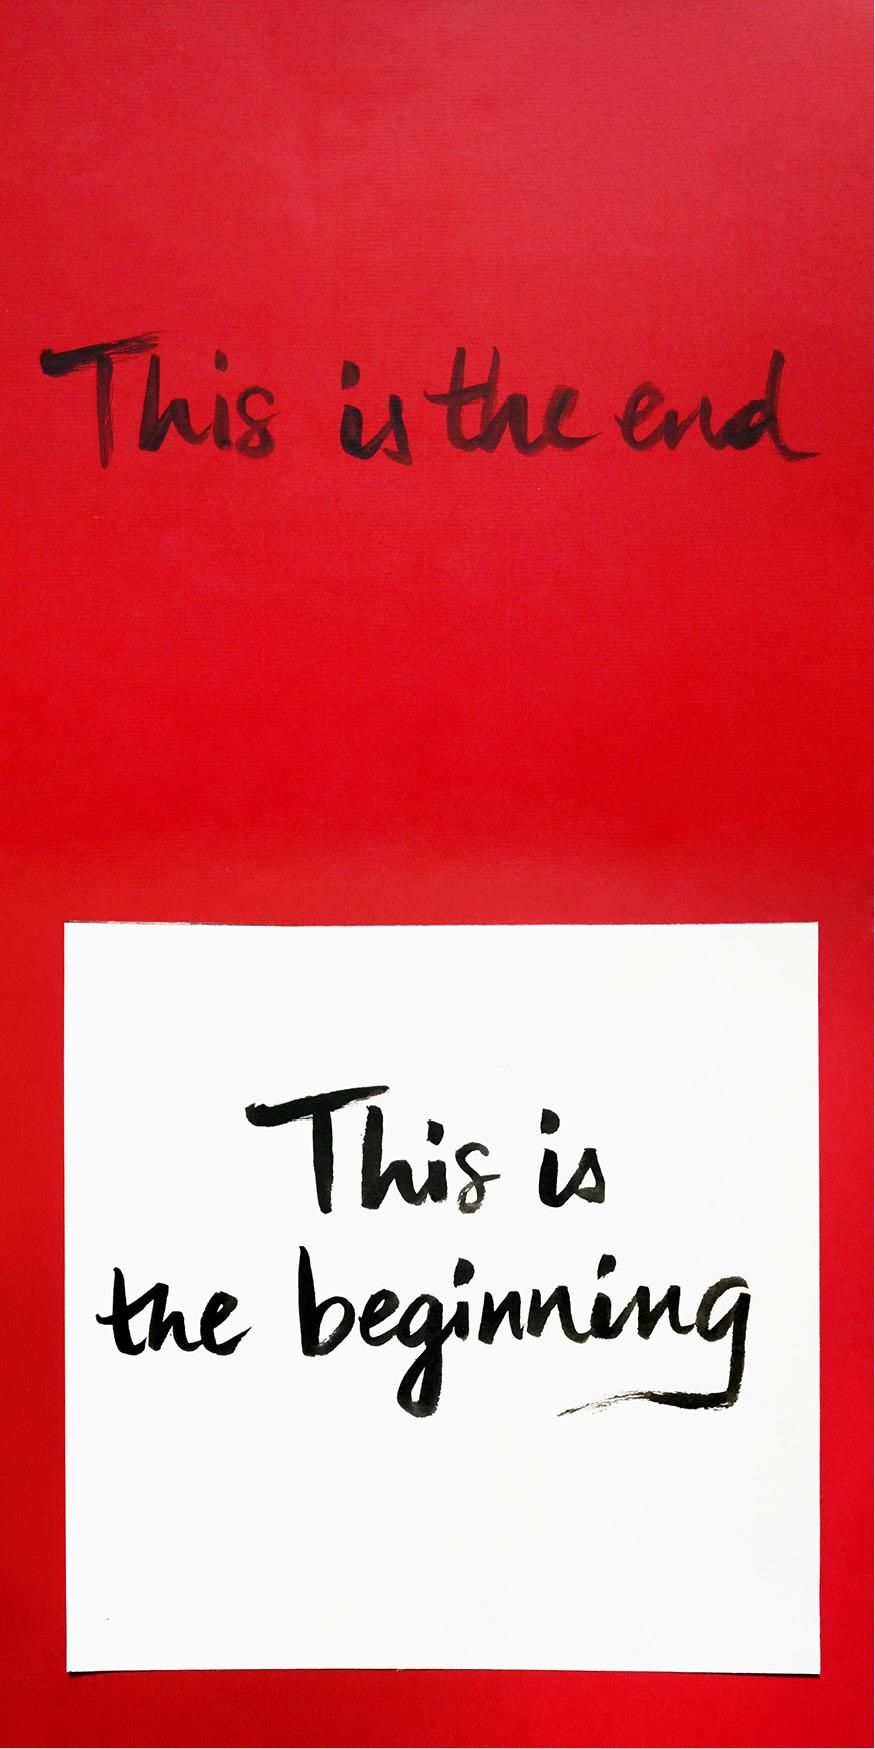 This is the end / This is the beginning - image 5 - student project